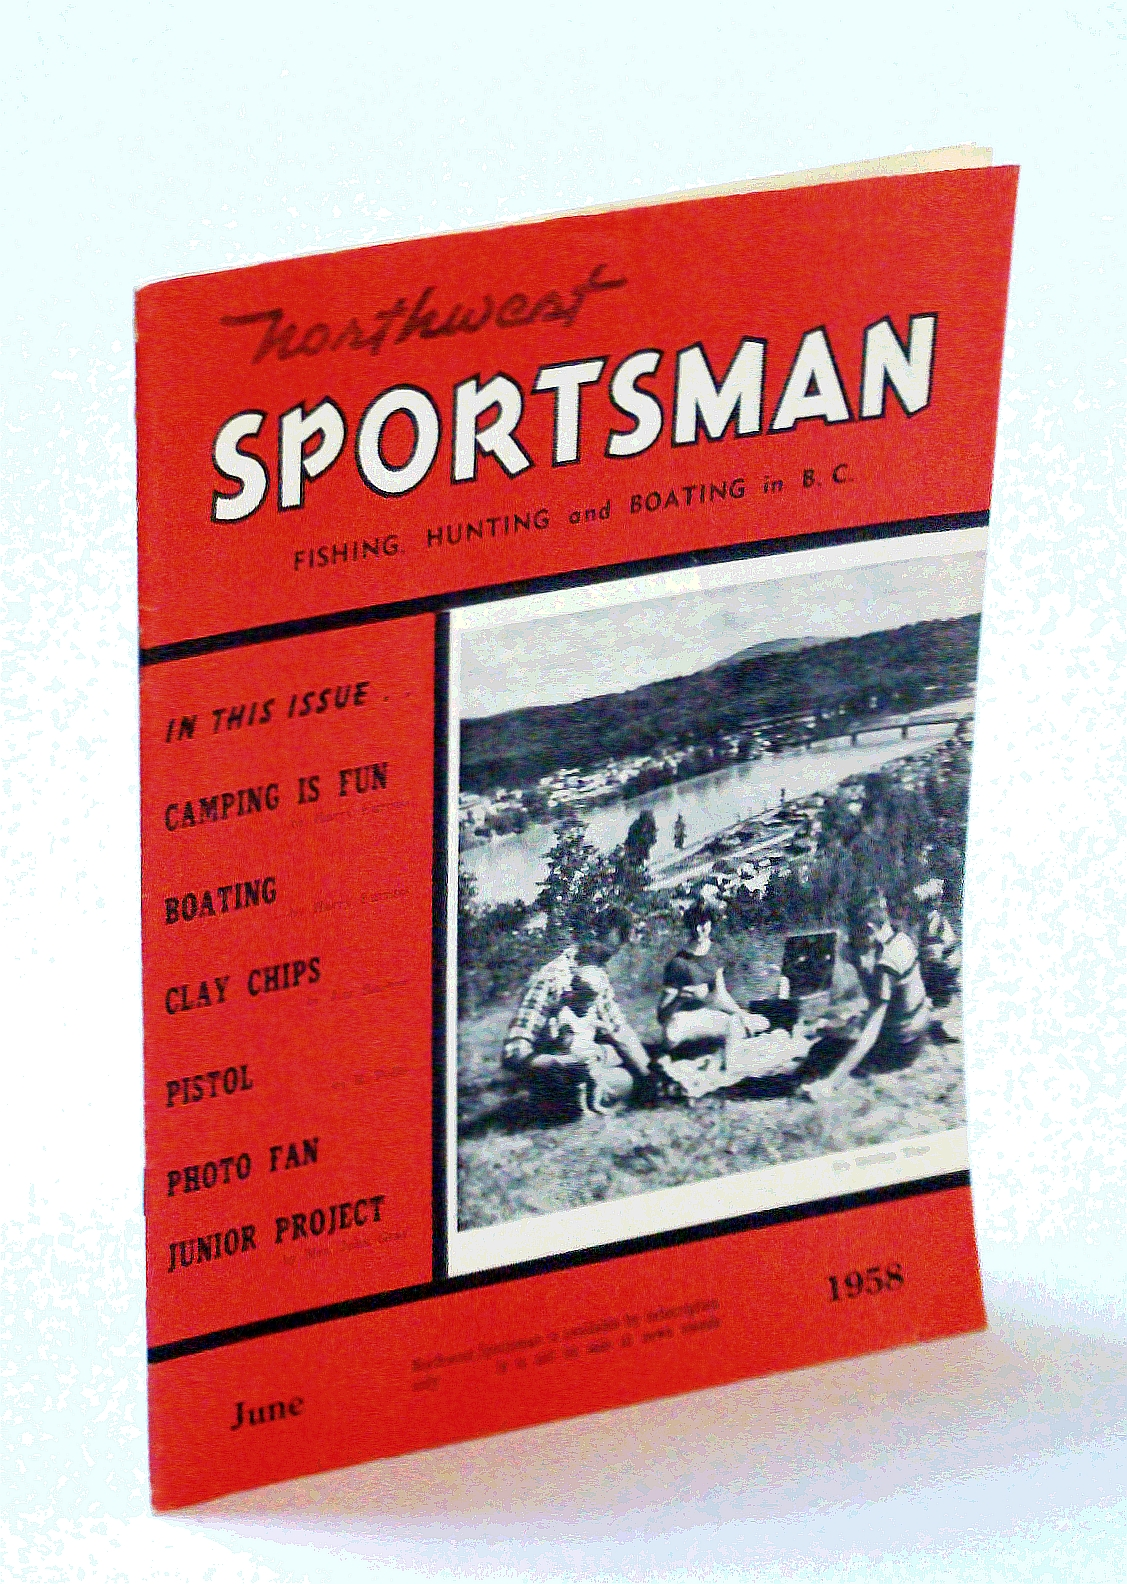 Image for Northwest Sportsman Magazine - Fishing, Hunting and Boating in B.C., June 1958 - Photos of Shooting Prize Winners